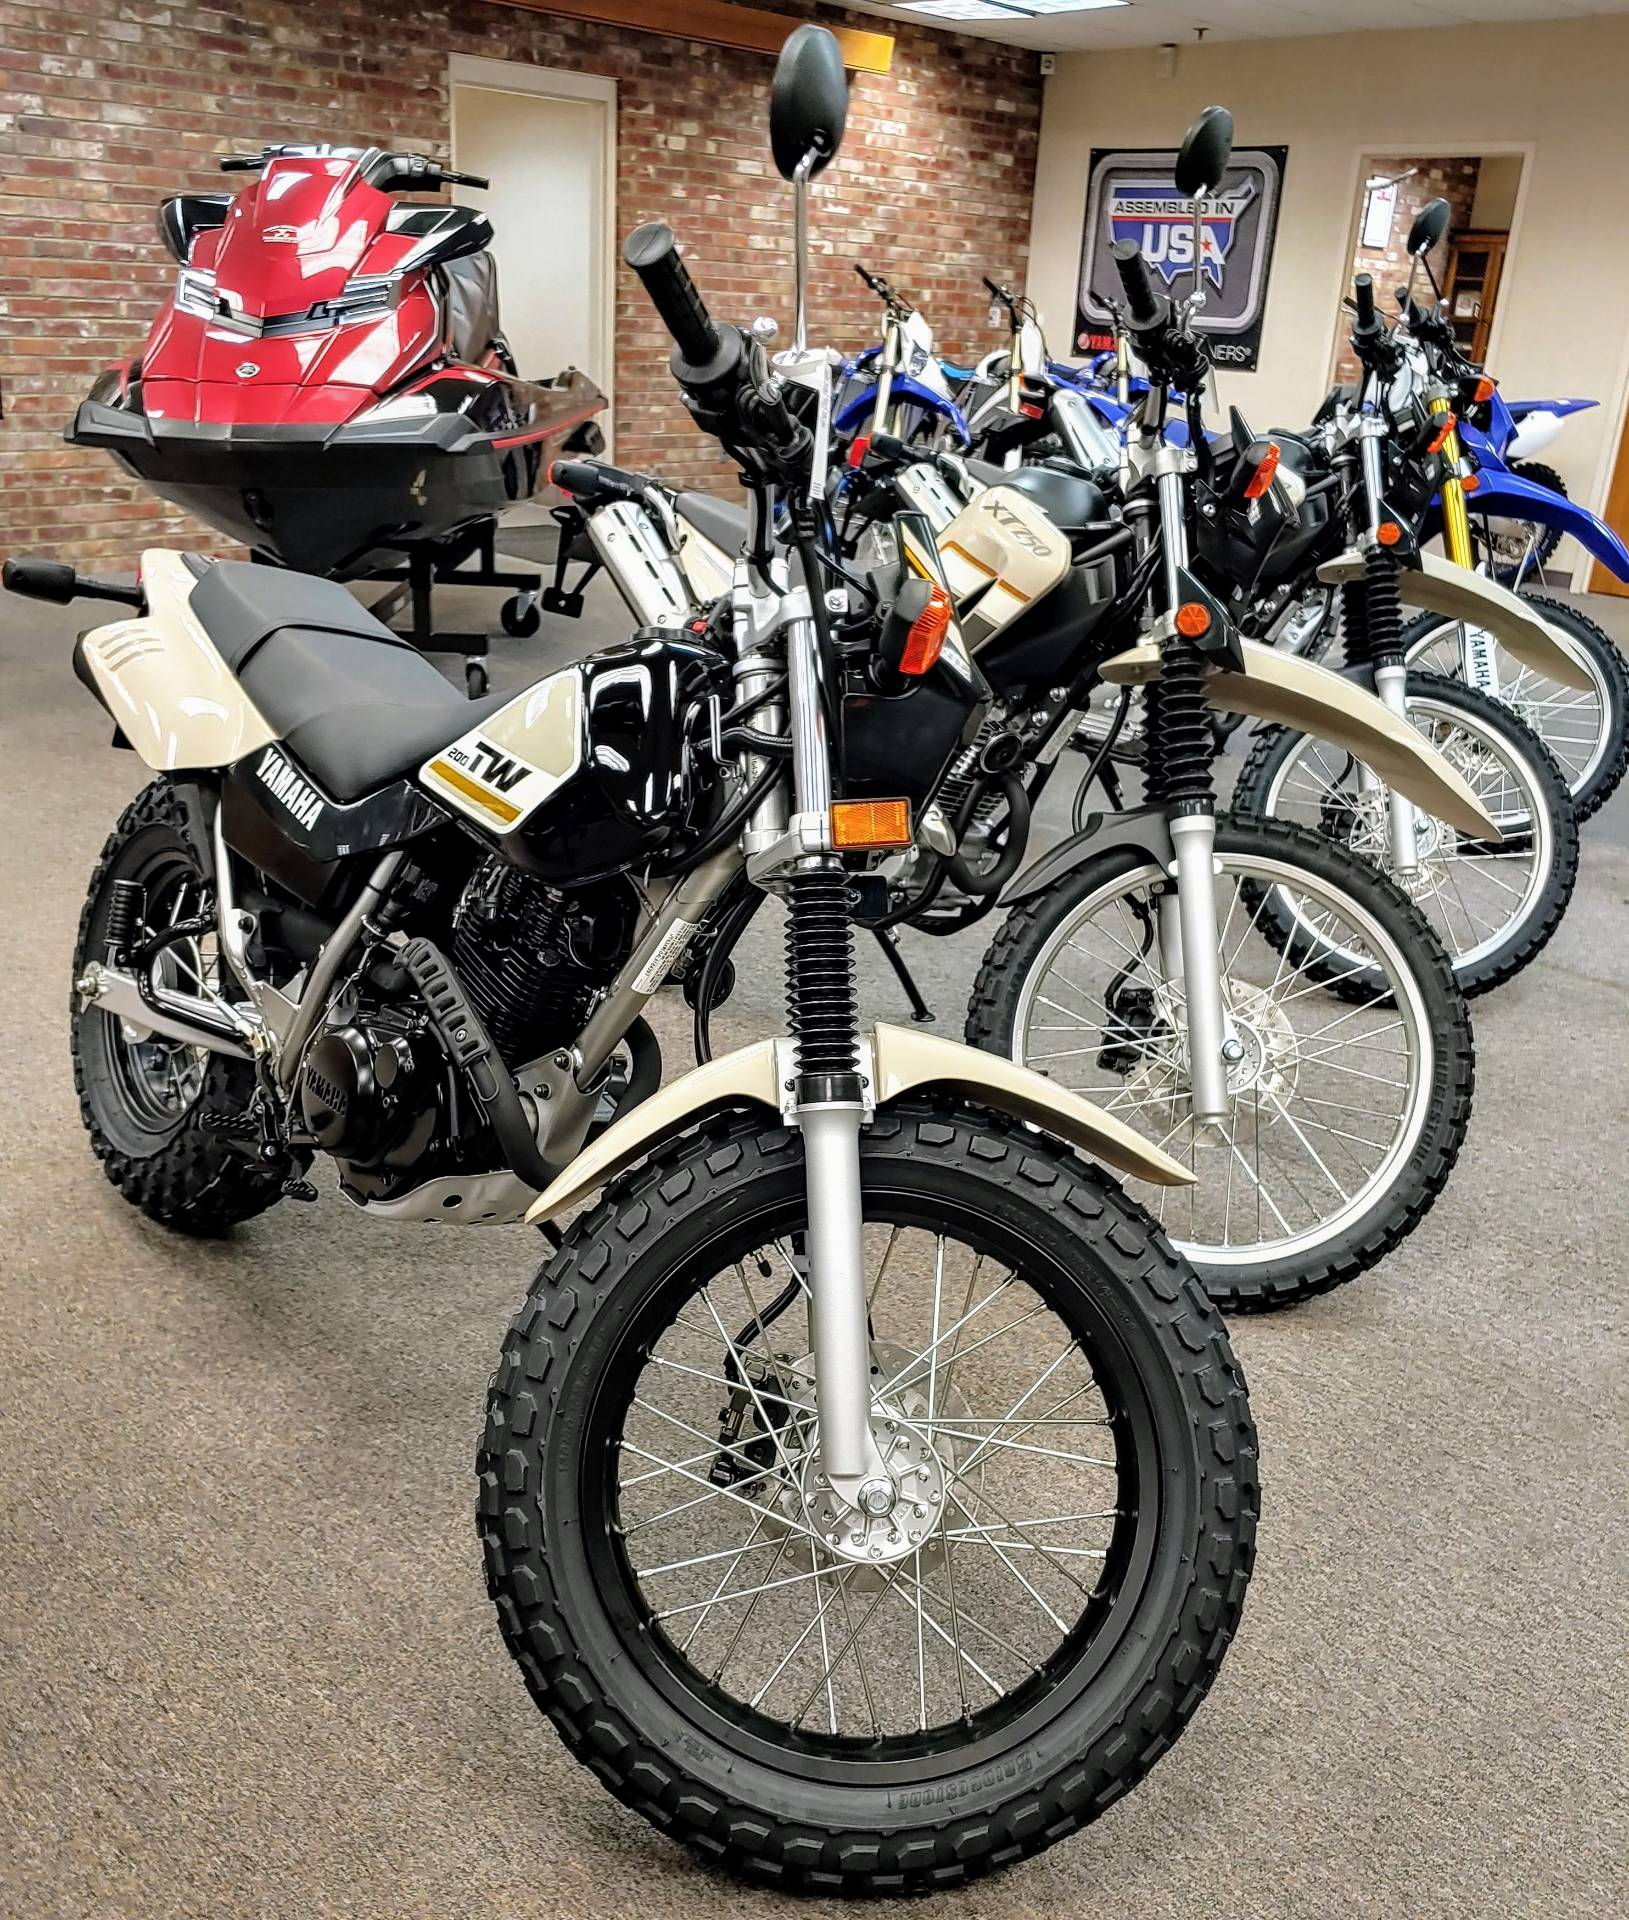 2020 Yamaha TW200 in Statesville, North Carolina - Photo 1